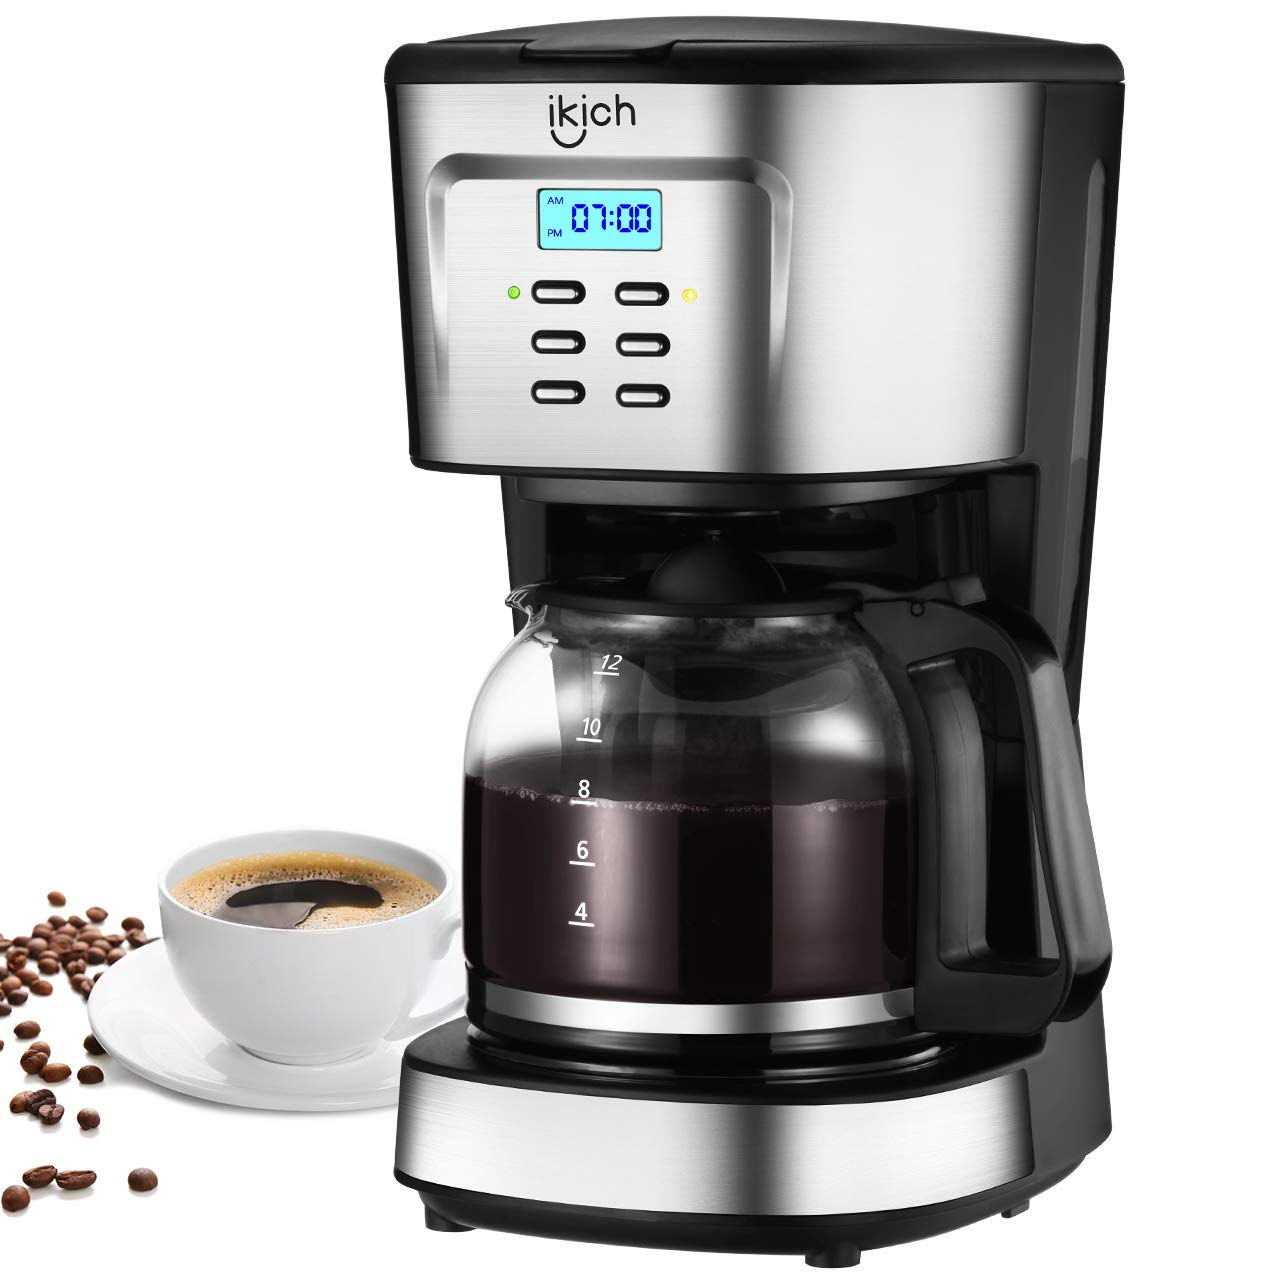 Drip Coffee Machine, IKICH 12 Cup Coffee Maker, 24h Programmable Smart Drip Coffeemaker Coffee Brewer with Glass Thermal Carafe, Permanent Filter and Stainless Steel Decoration for Home and Office